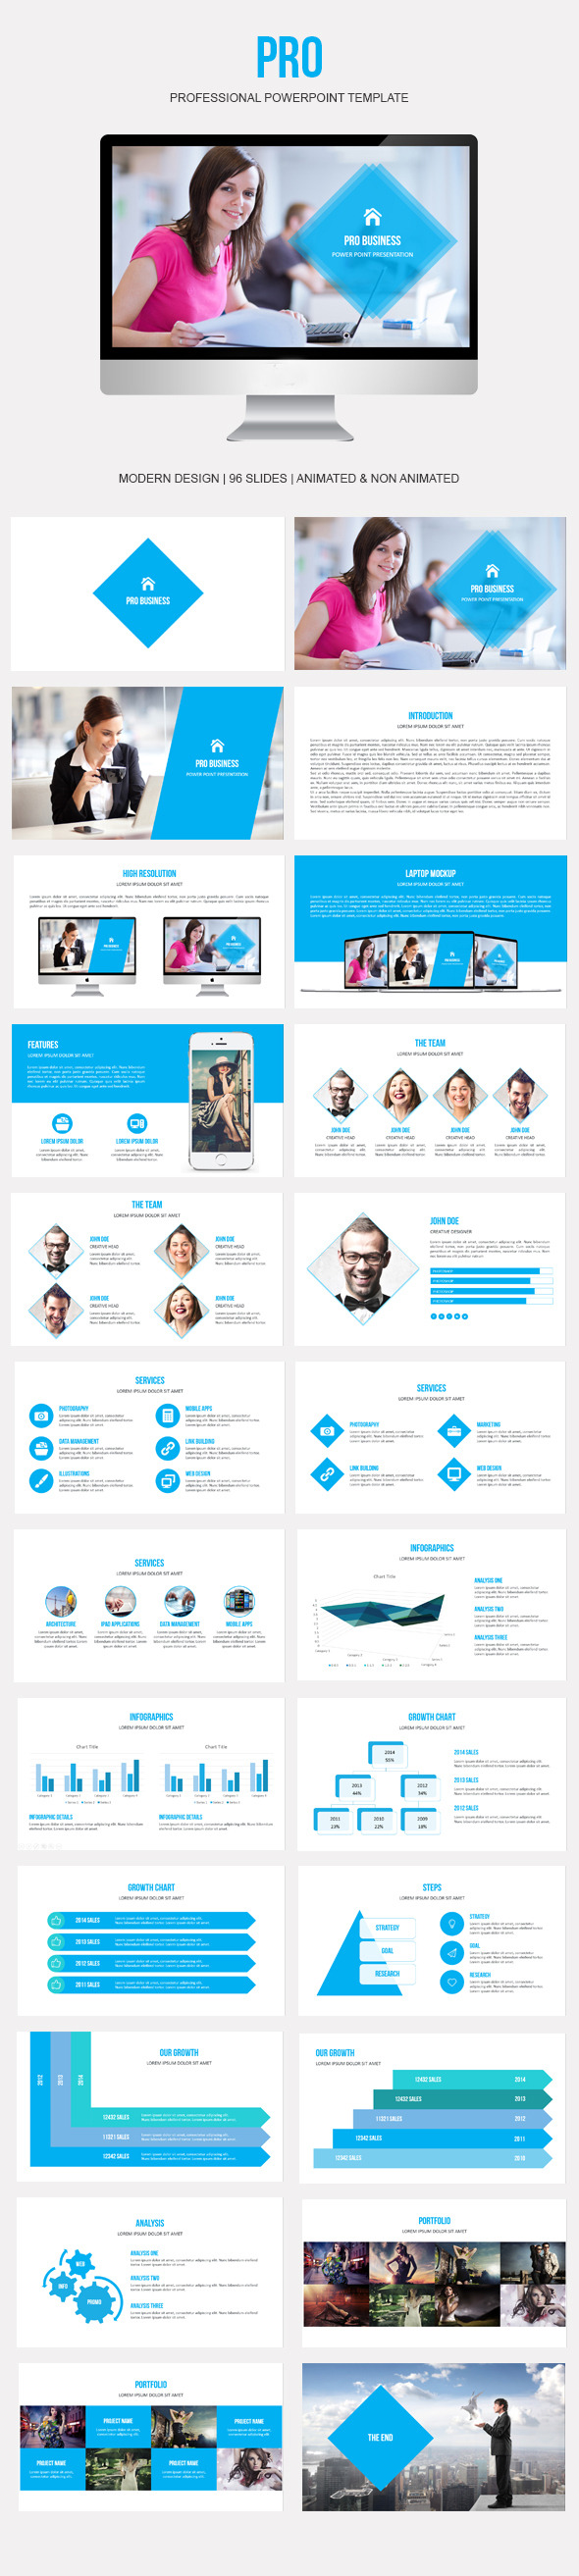 Pro Powerpoint Presentation Template - Business PowerPoint Templates